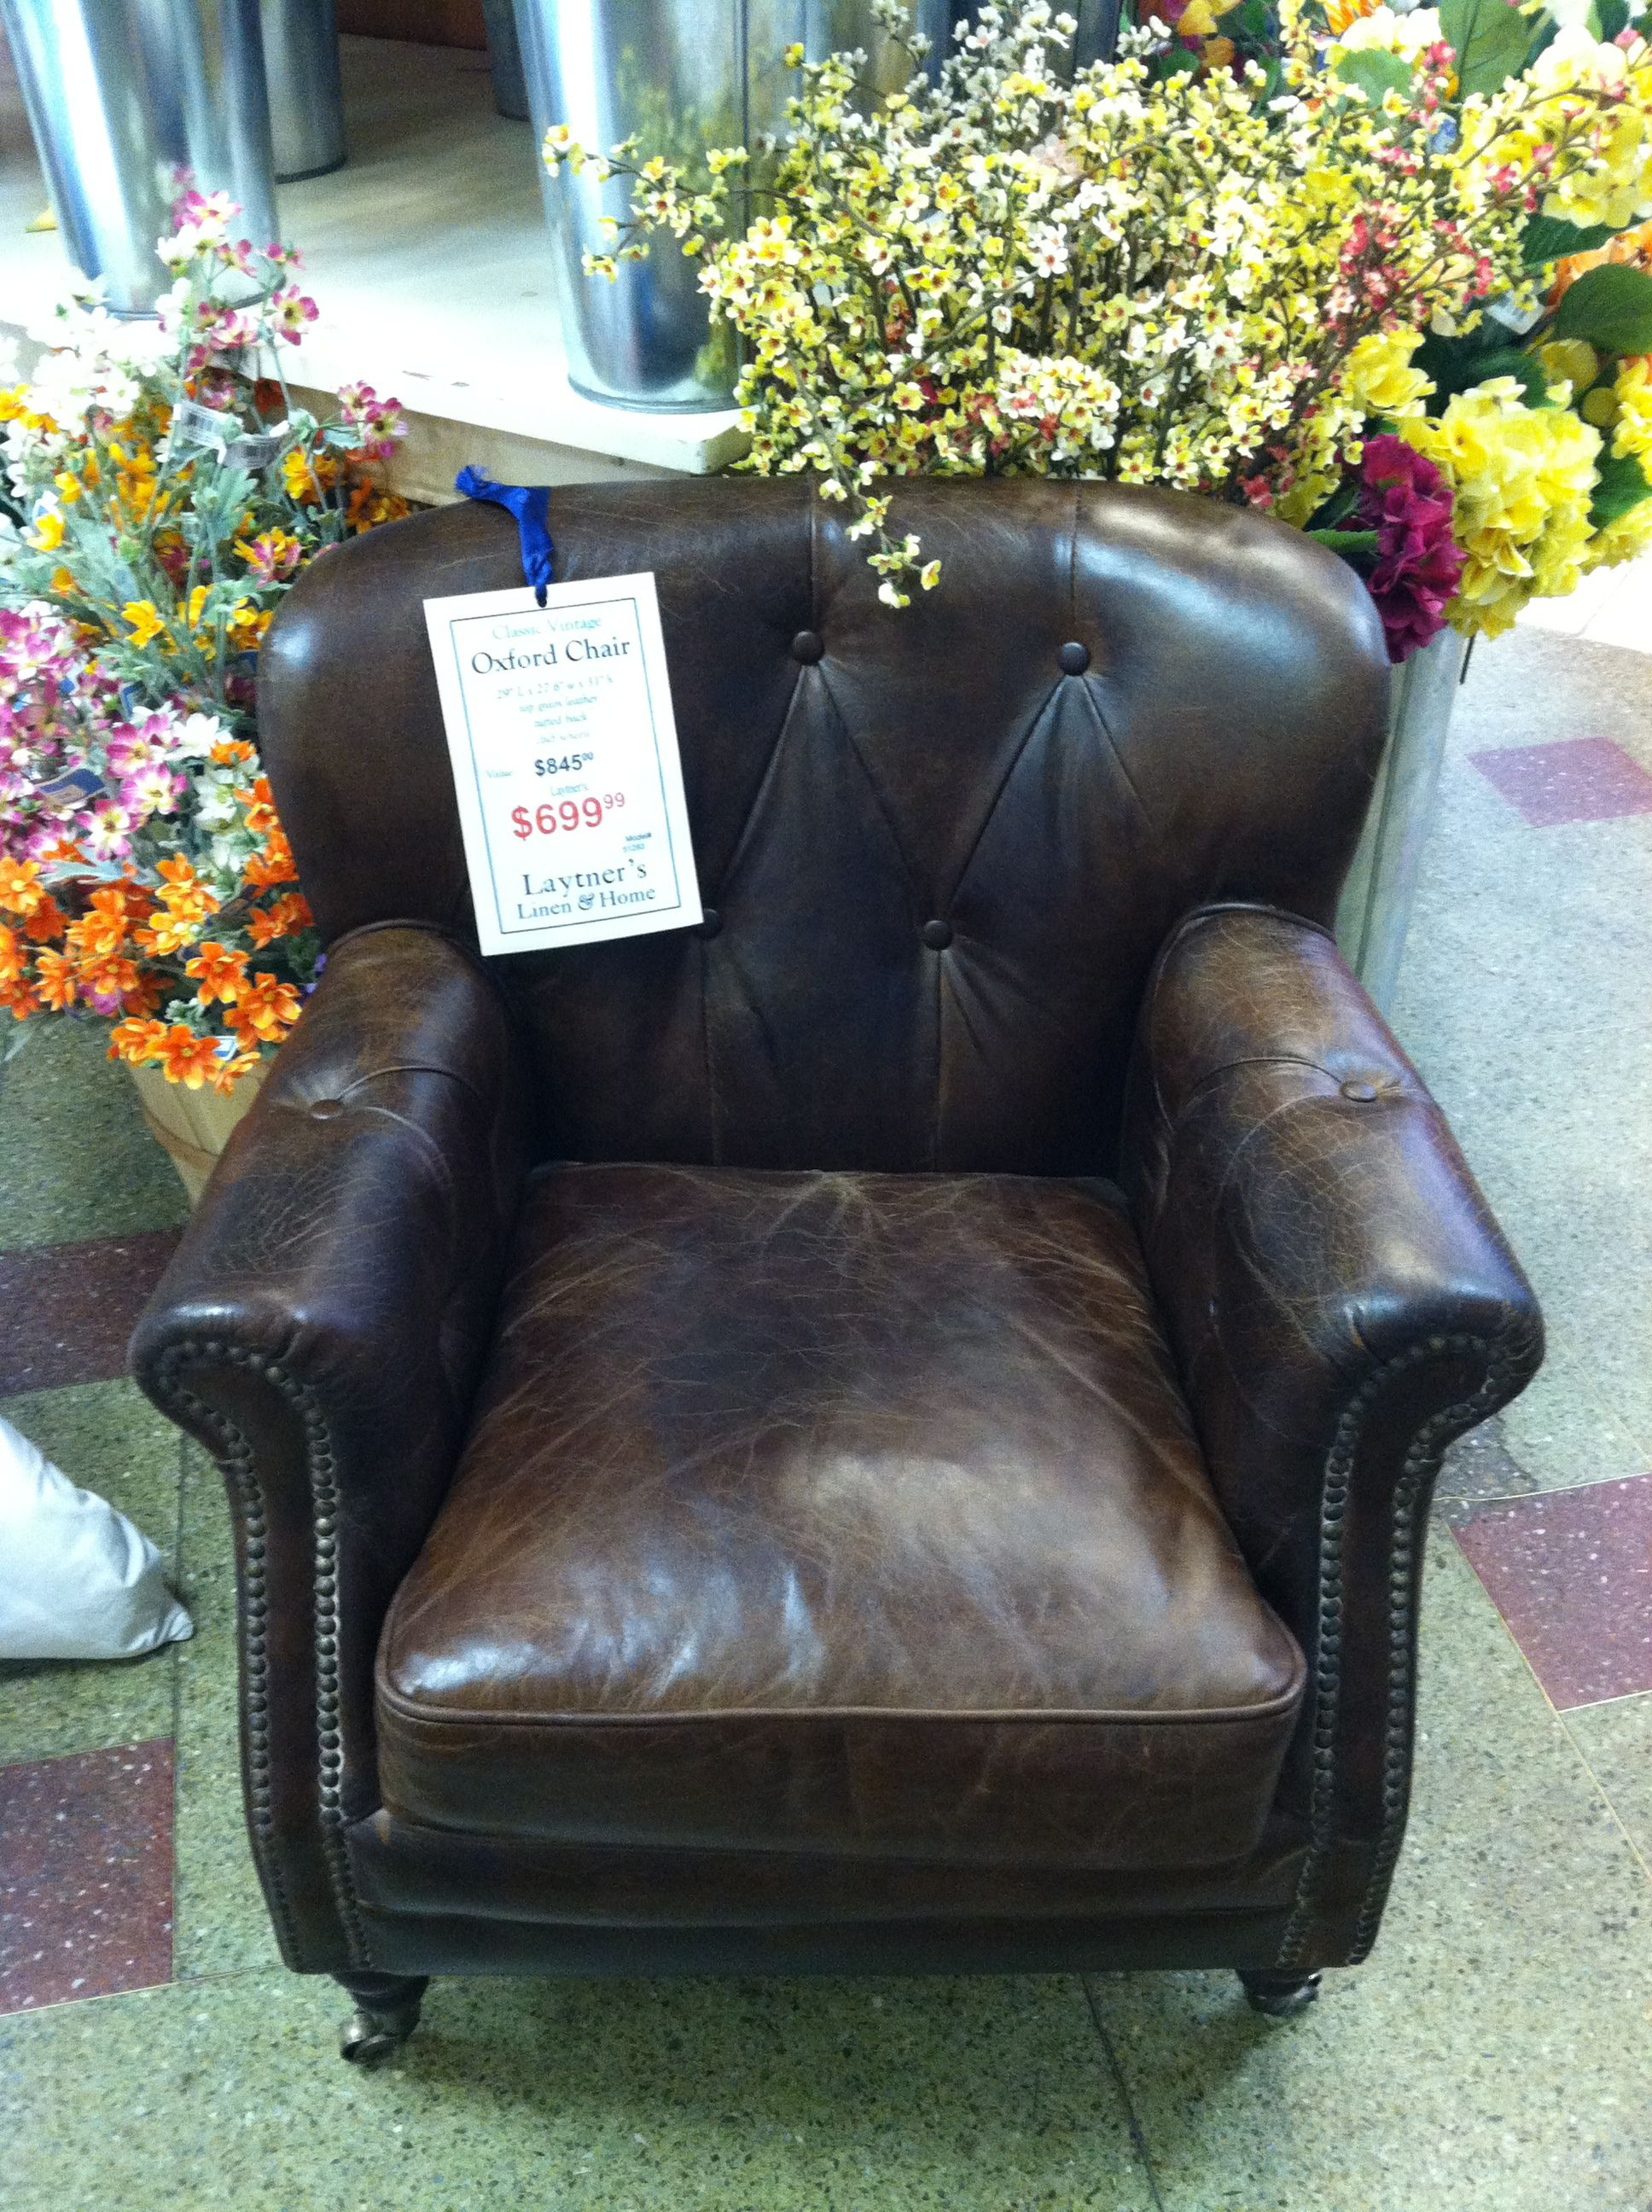 Fine leather chair. -M